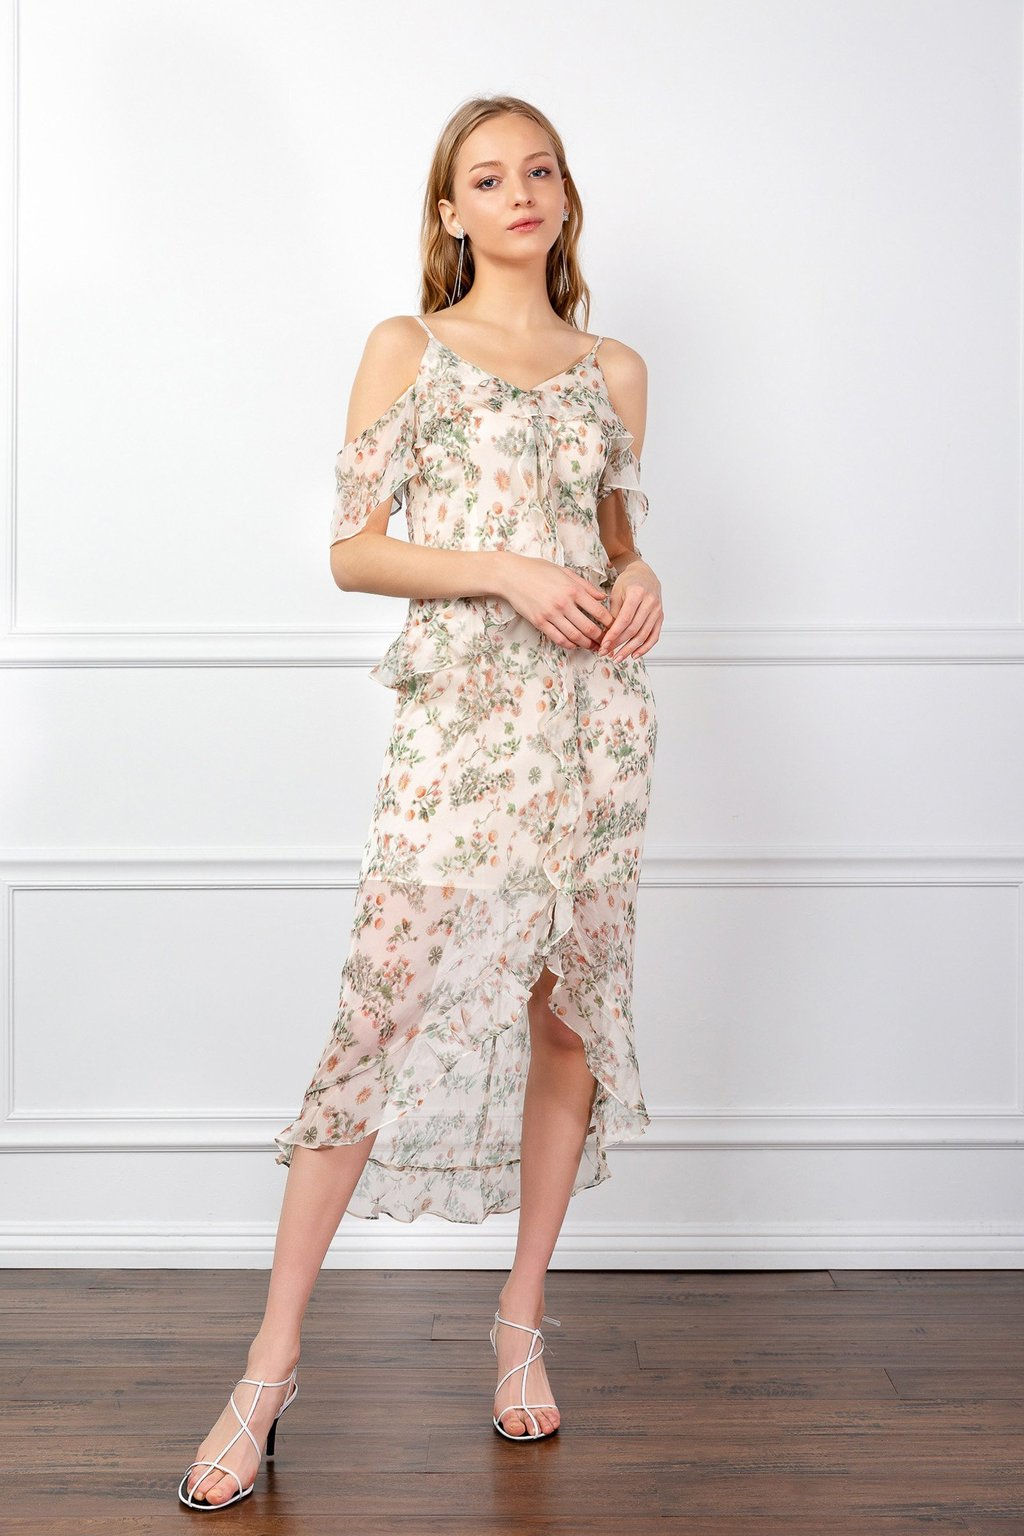 Hazel Floral Dress by J.ING women's fashion clothing